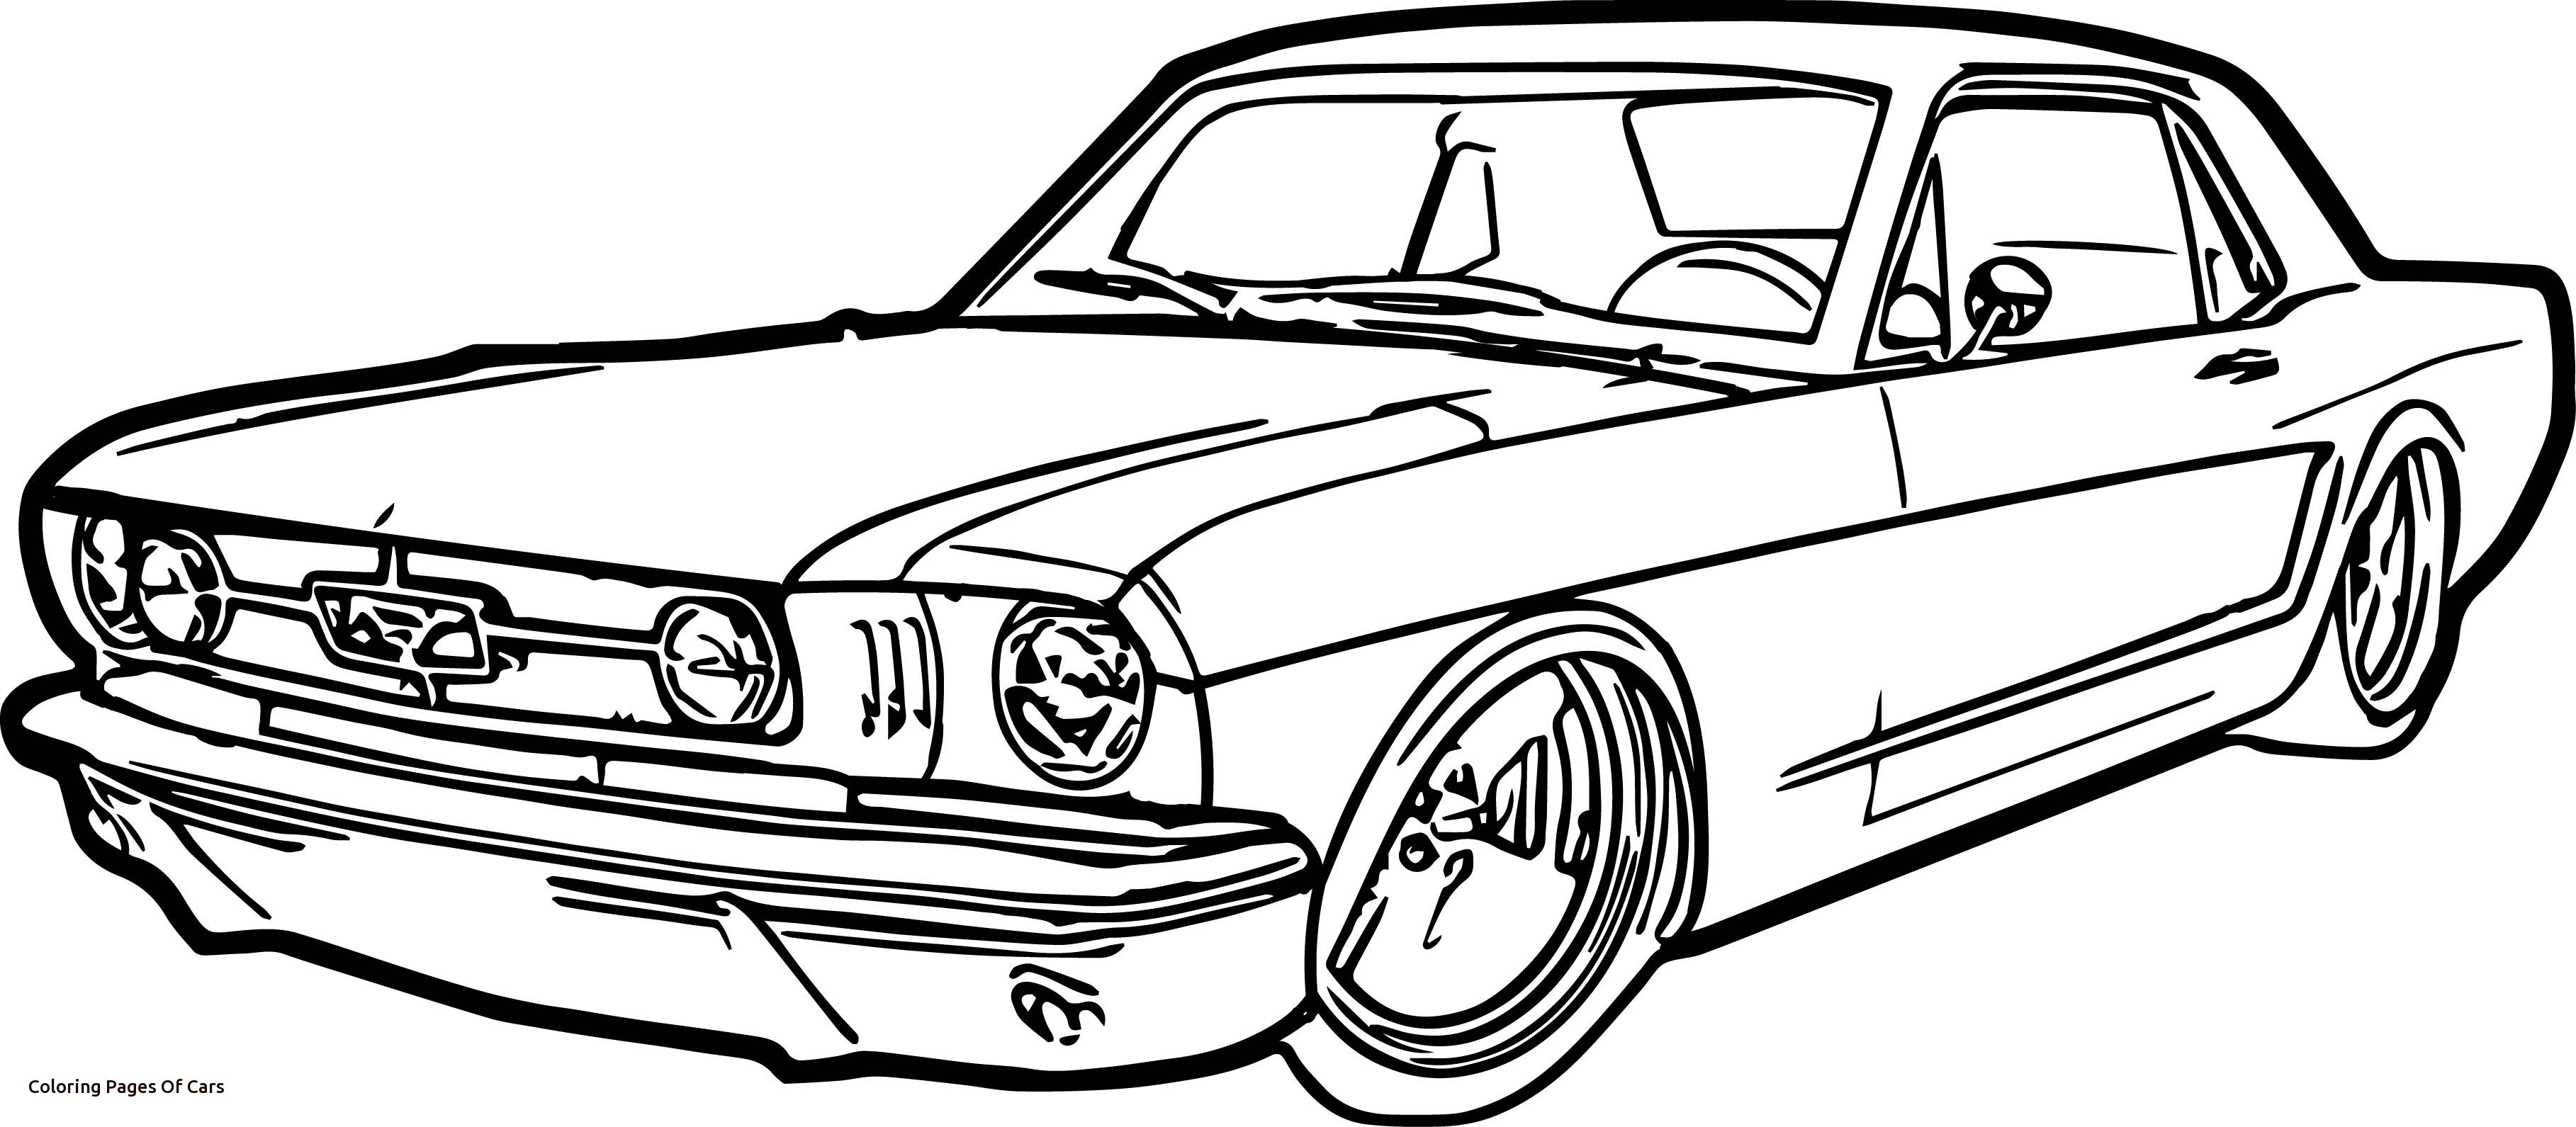 Shelby Cobra Drawing